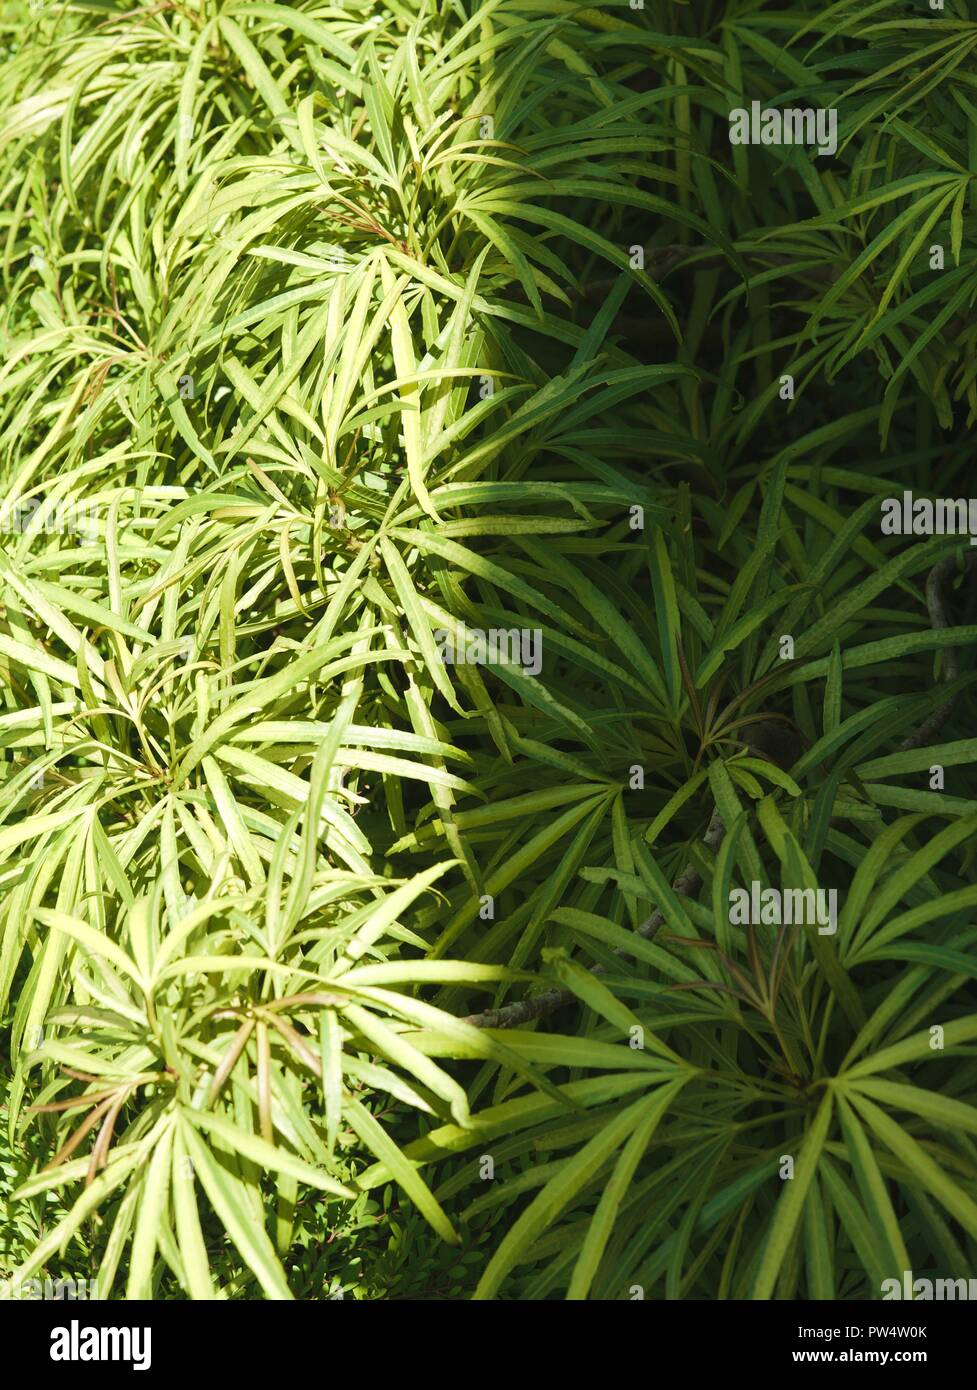 Plants and green - Stock Image